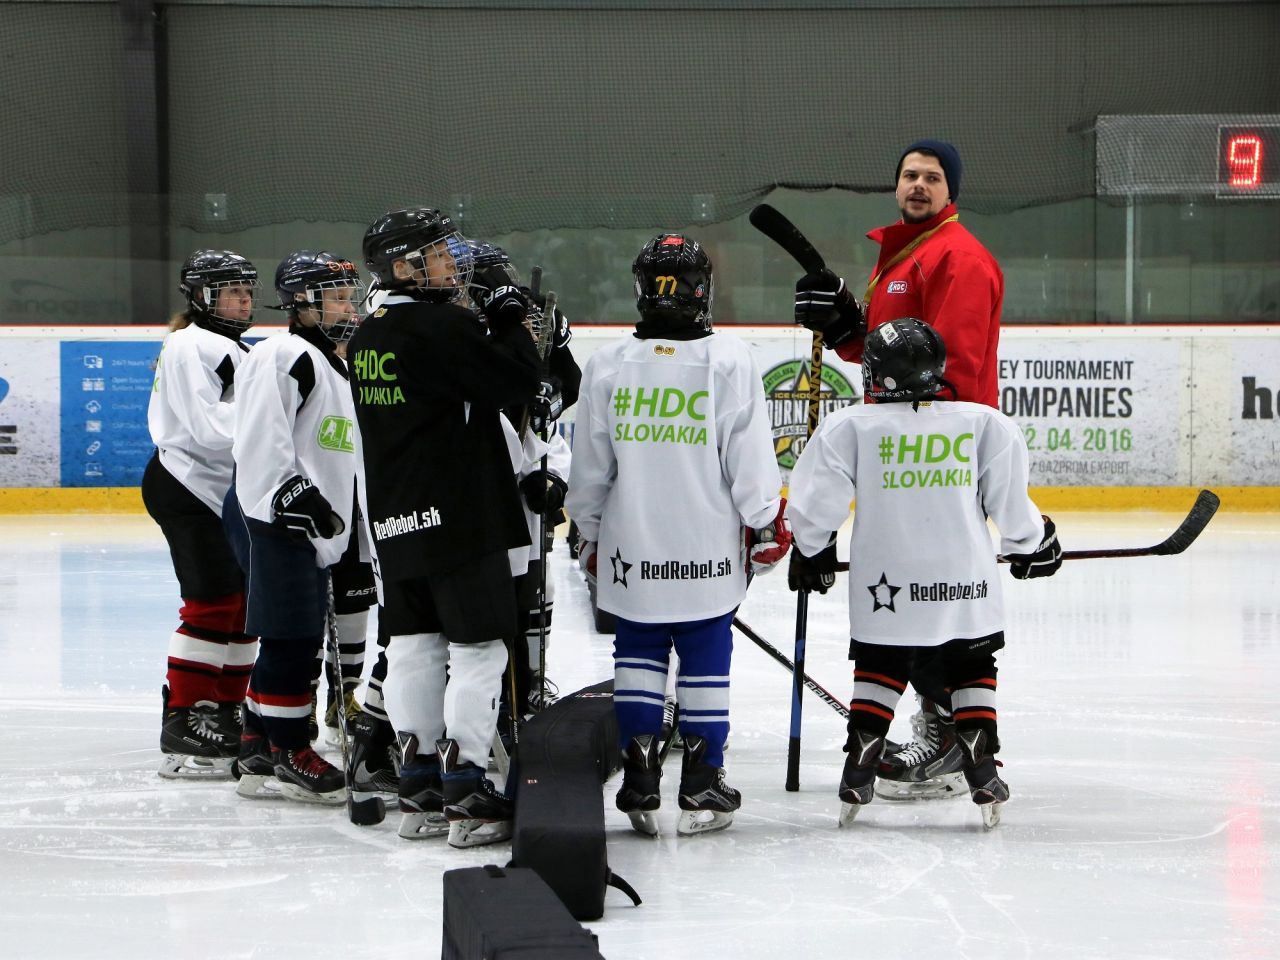 /img/foto_albumy/201707_teams_preparation_in_hdc_slovakia_EN/foto_91_20170704_113007.jpg